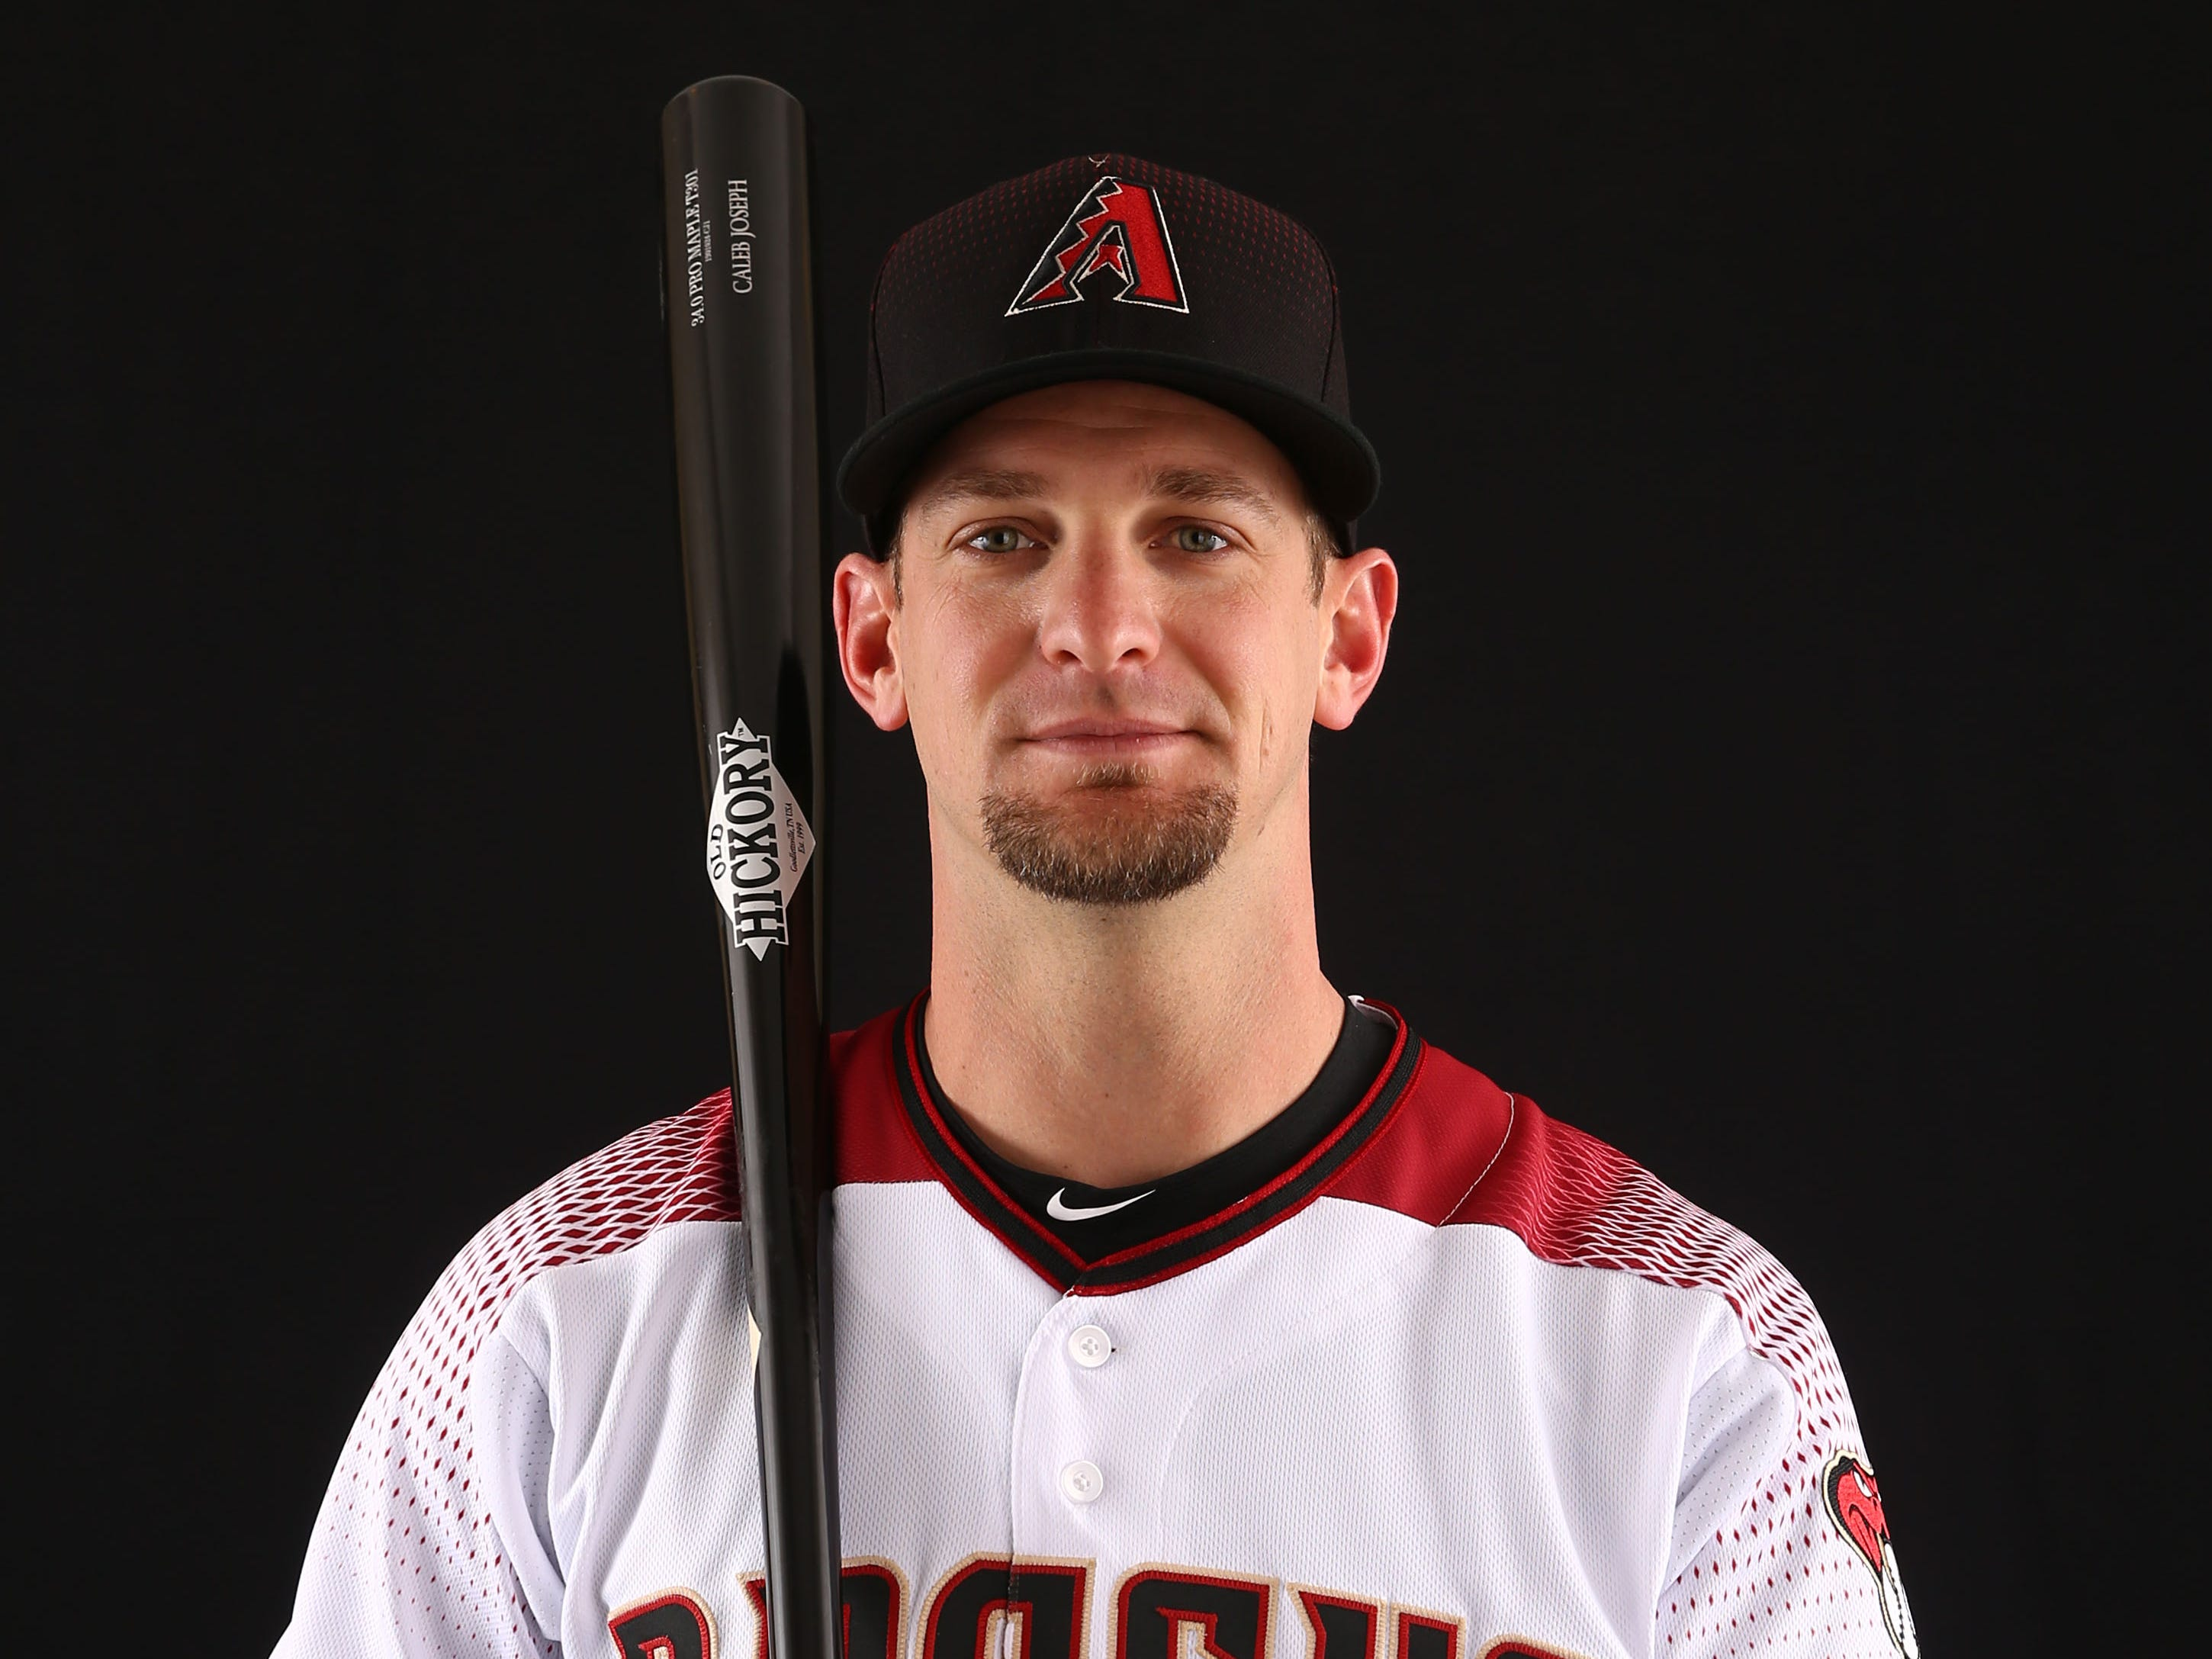 Caleb Joseph of the Arizona Diamondbacks poses for a photo during the annual Spring Training Photo Day on Feb. 20 at Salt River Fields in Scottsdale, Ariz.